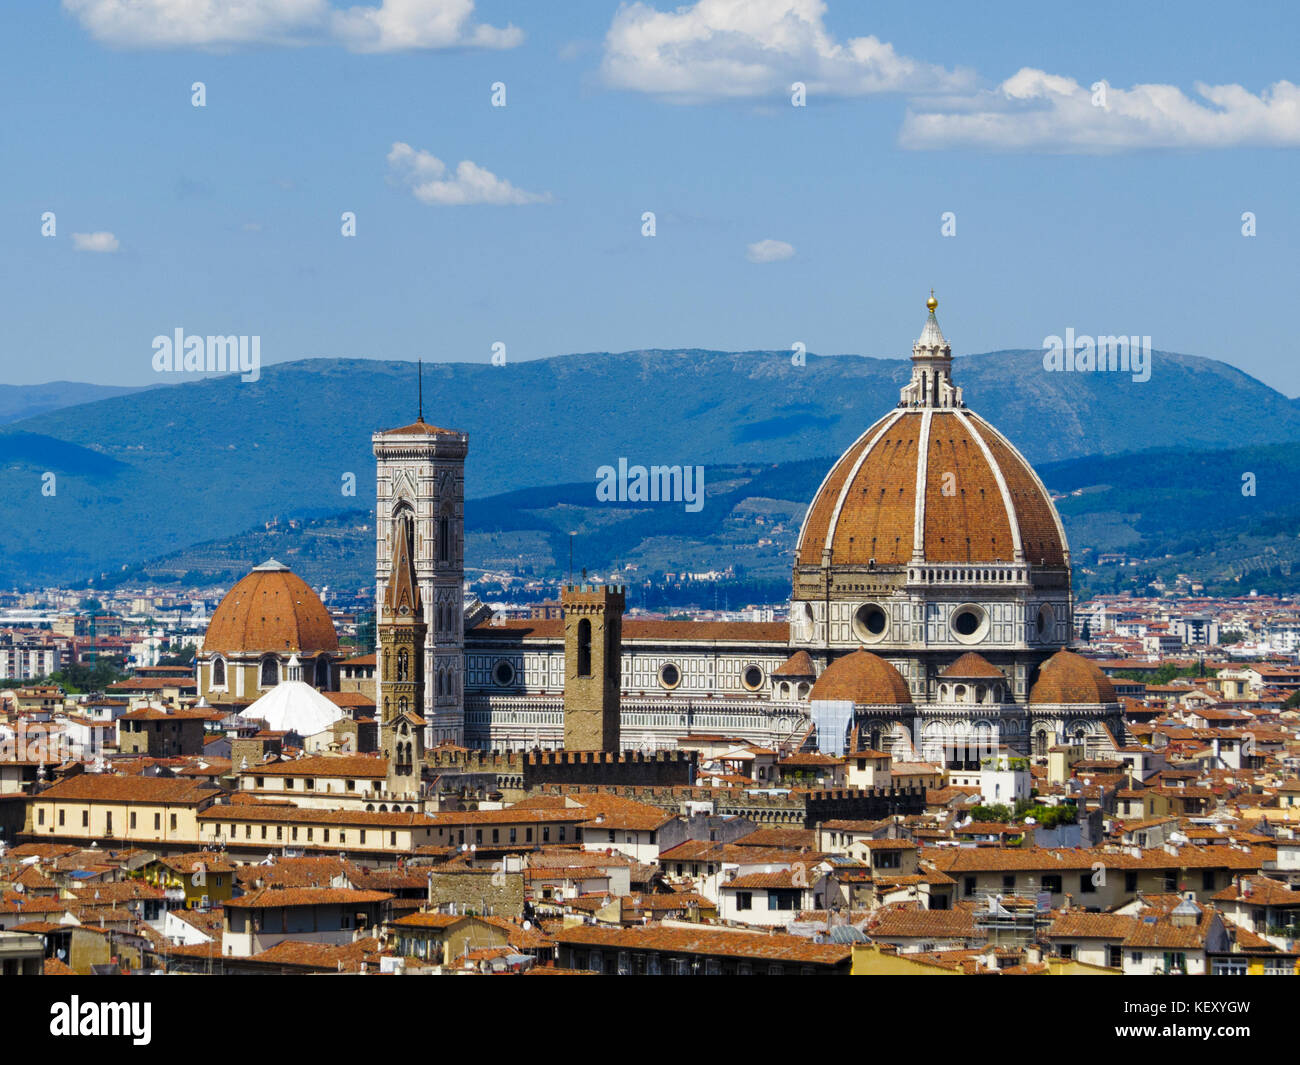 Il Duomo di Firenze (Florence Cathedral). Florence, Tuscany, Italy. - Stock Image